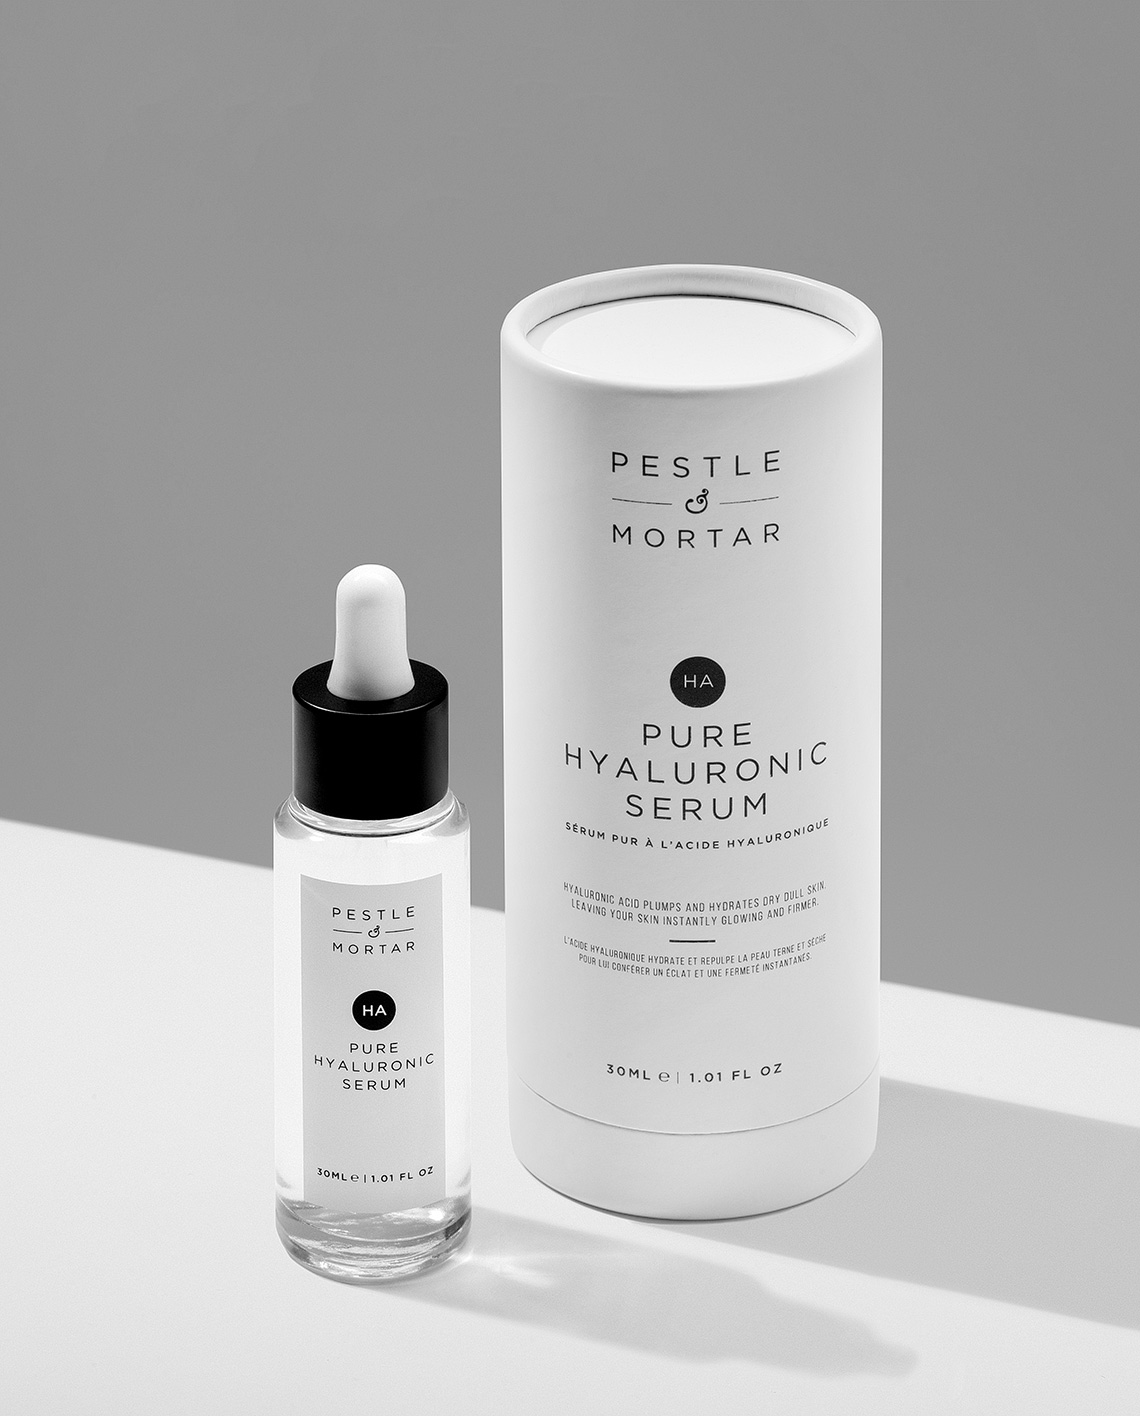 Hyaluronic-serum-pestle-and-mortar-